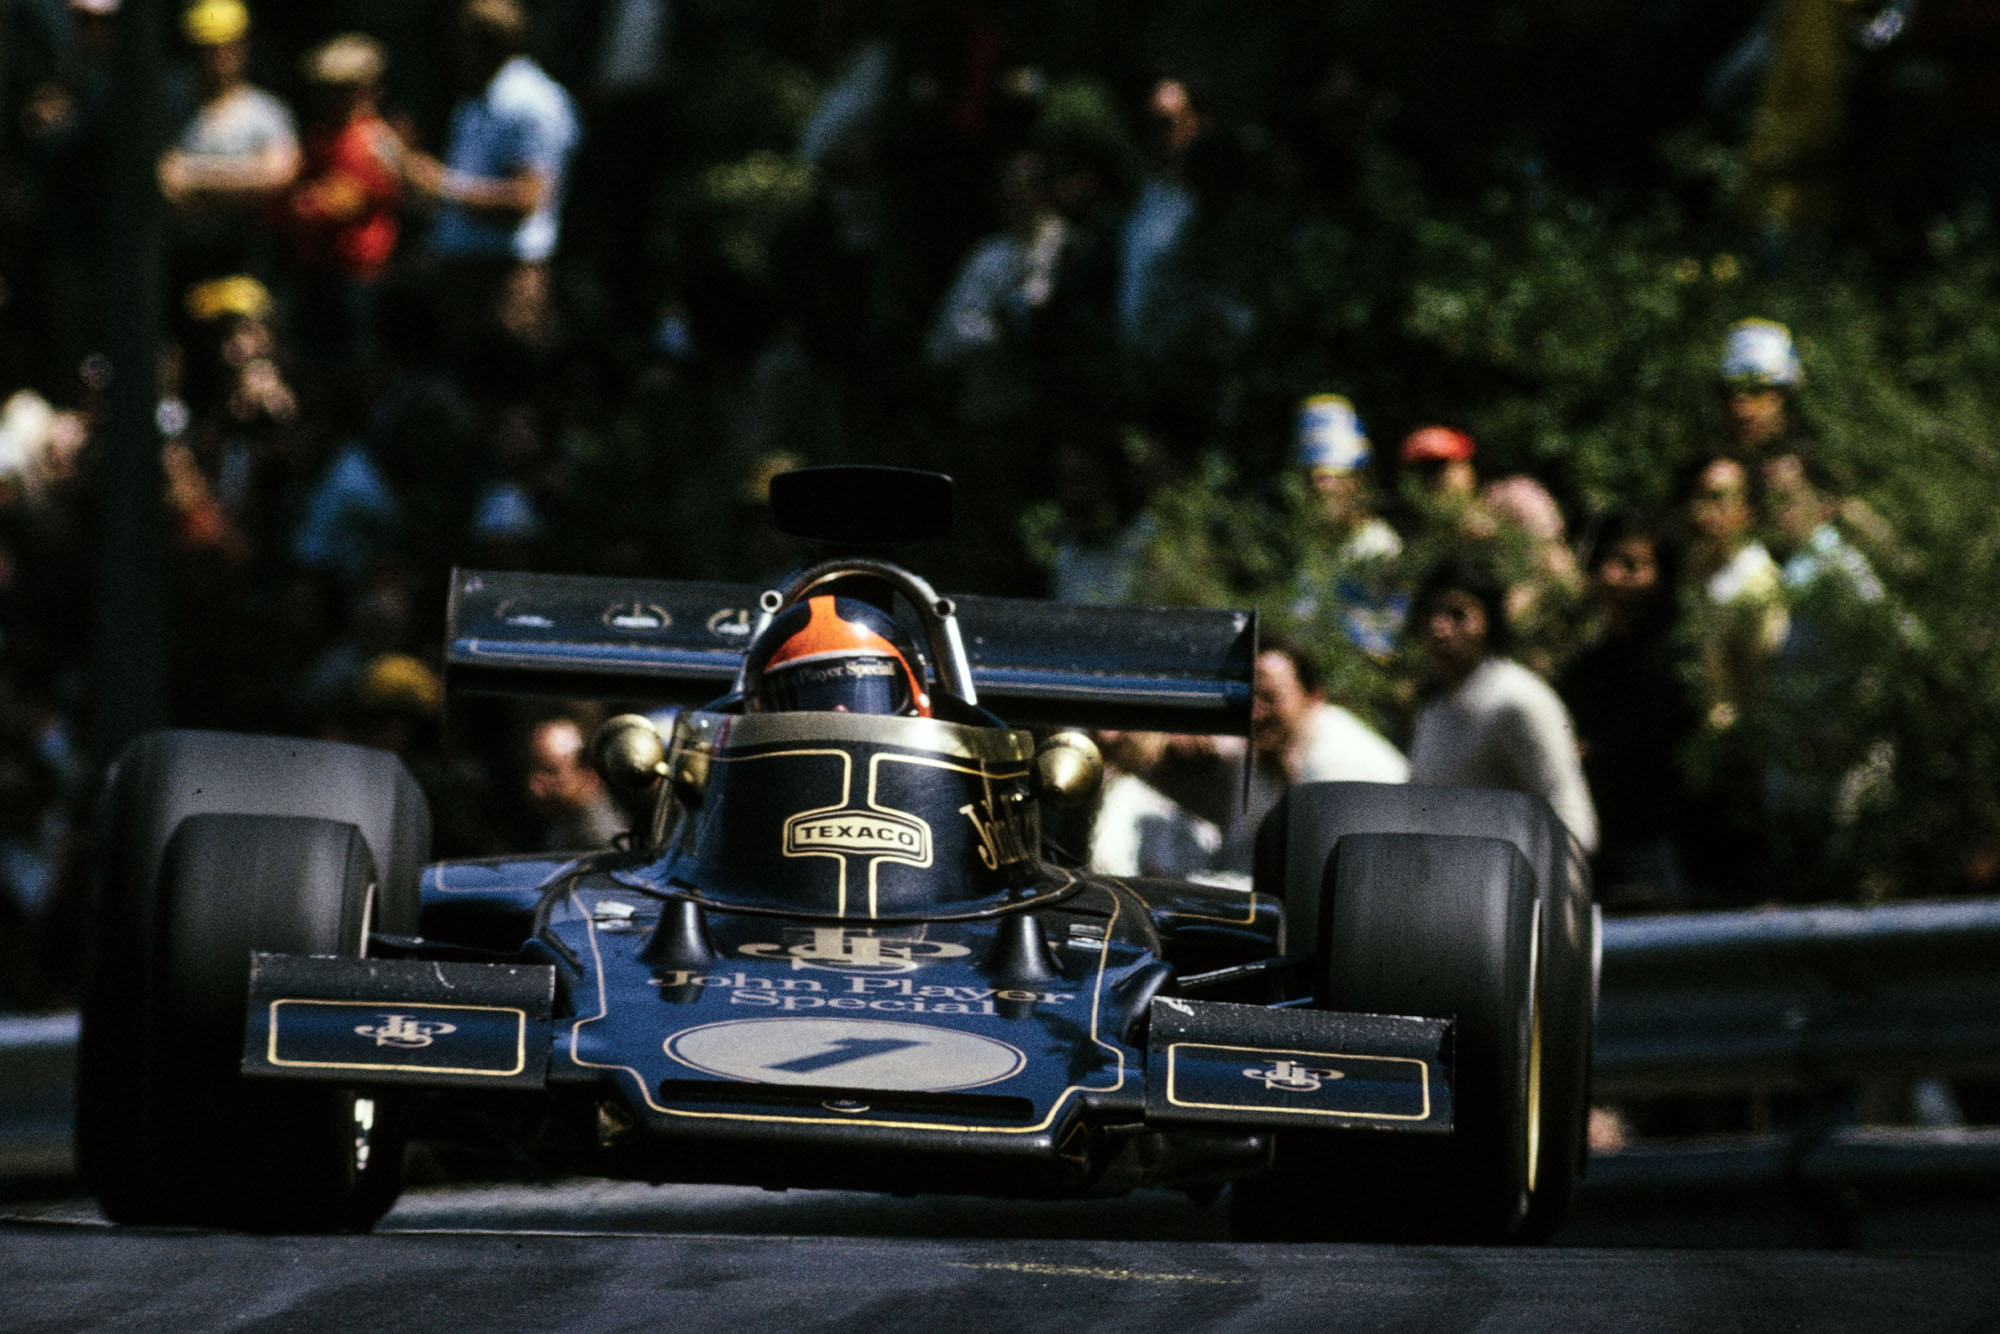 Emmerson Fittipaldi pushing in his Lotus at the 1973 Spanish Grand Prix.